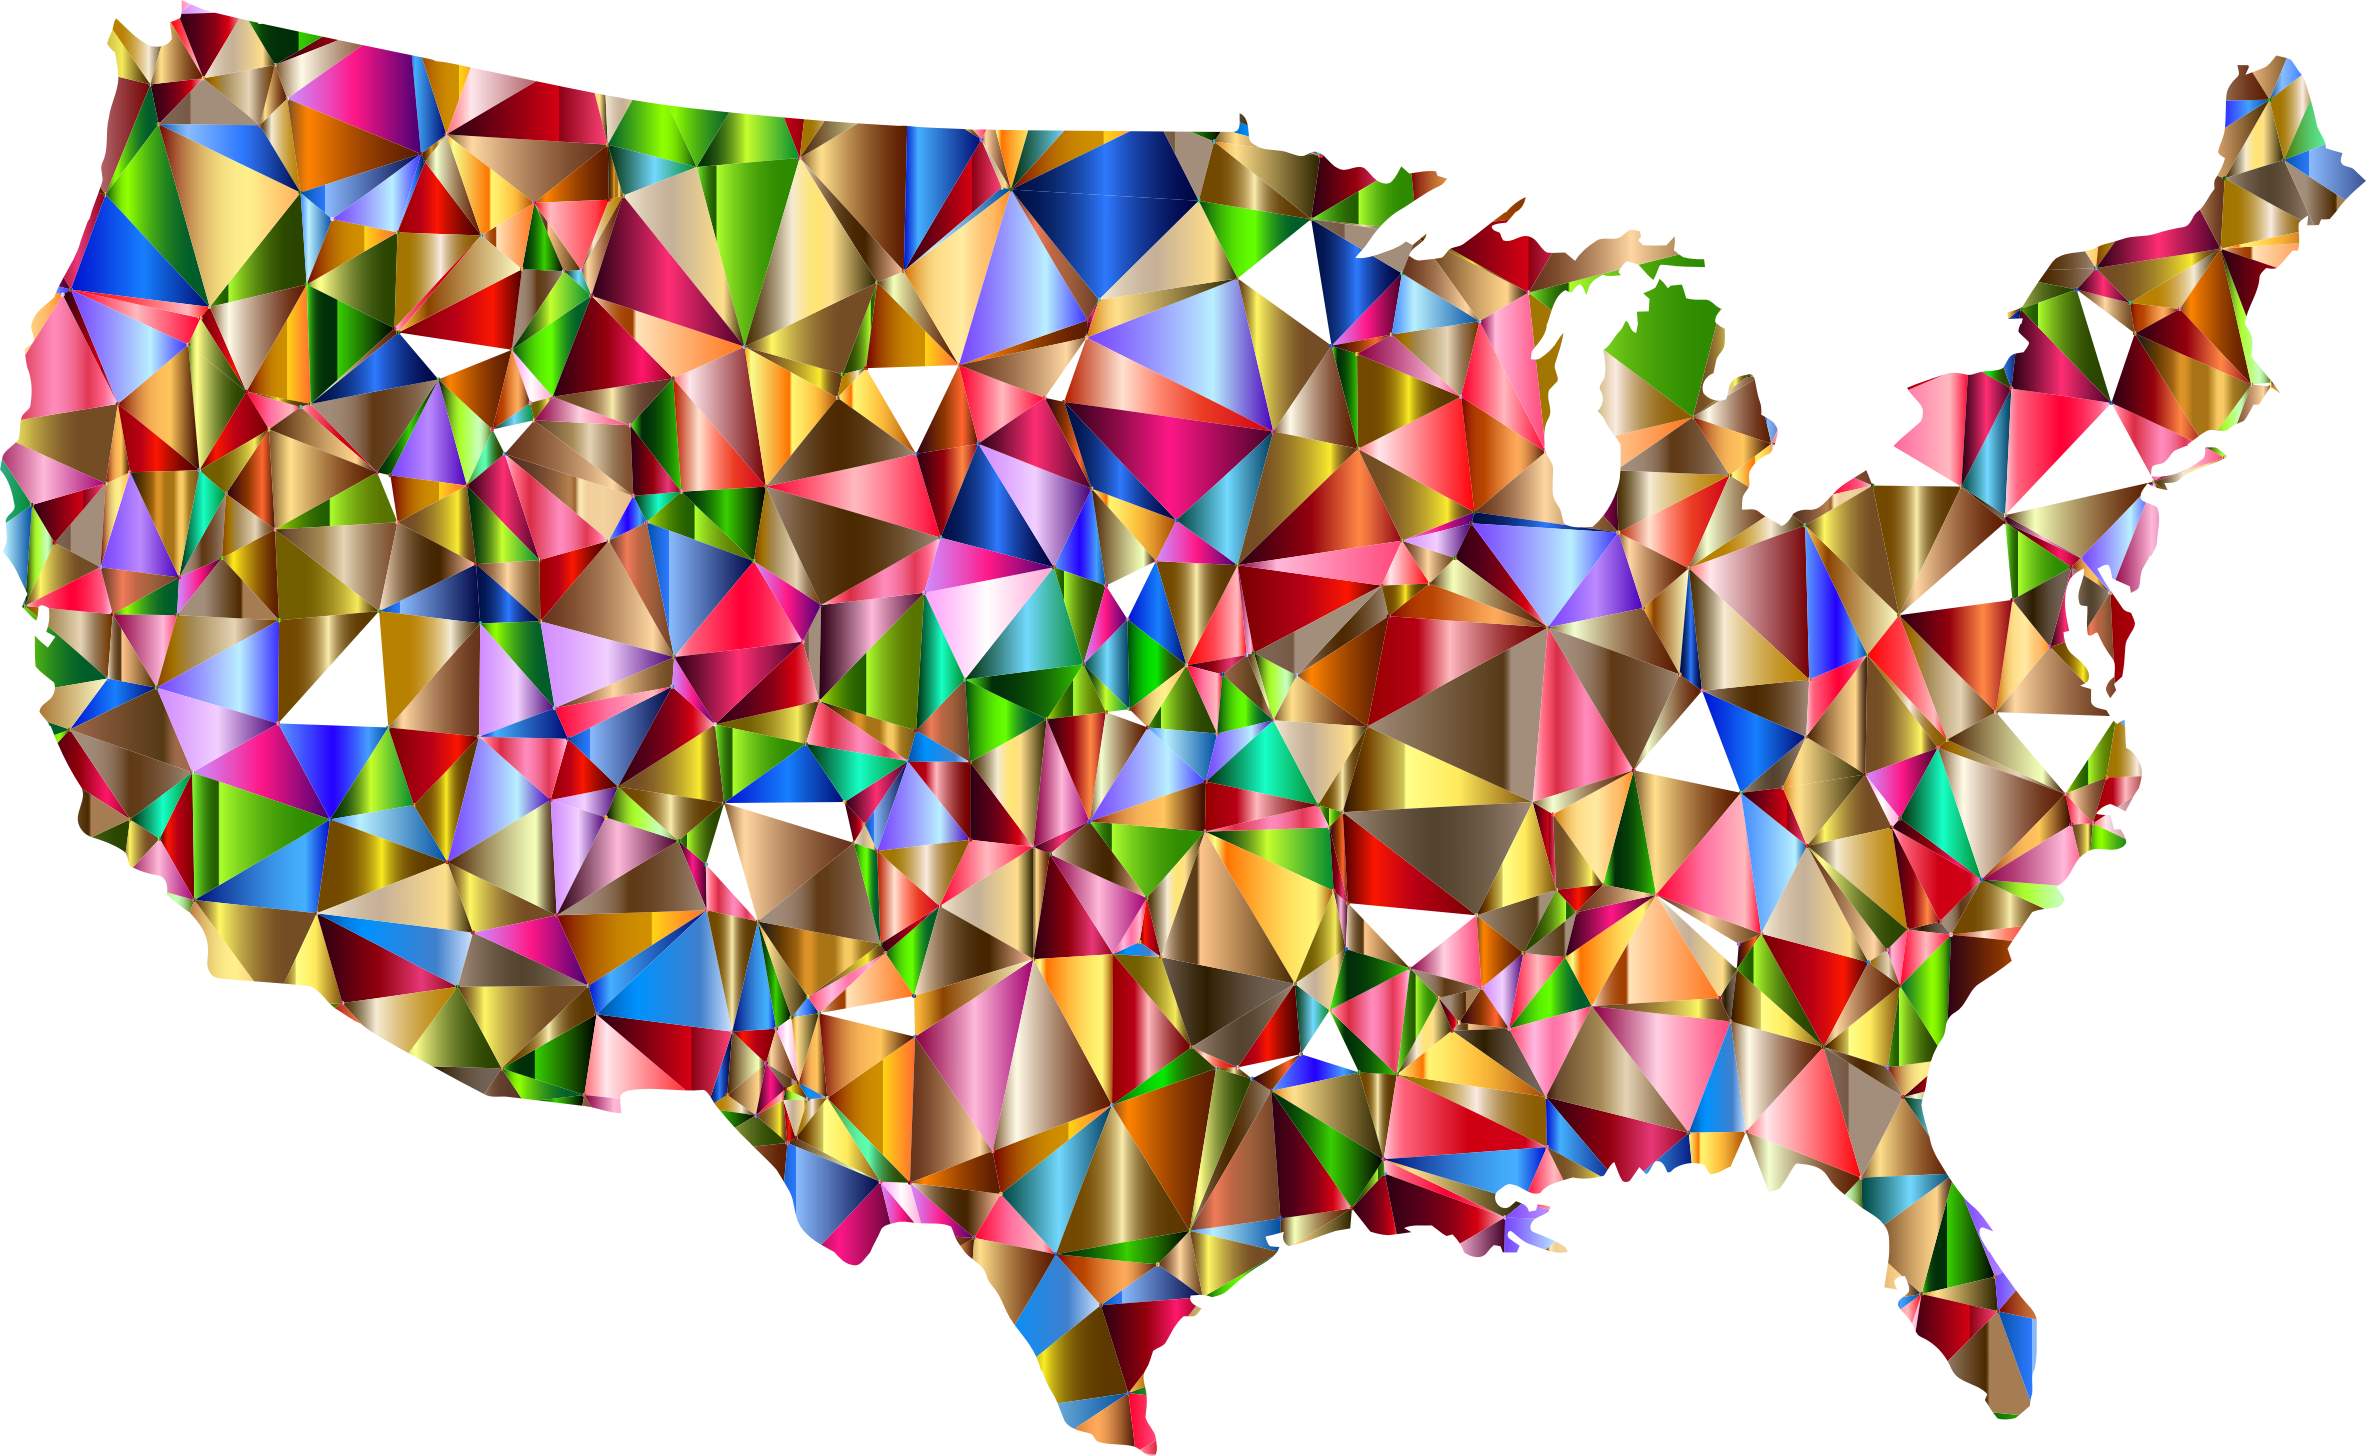 Vibrant Colorful Low Poly America USA Map by GDJ